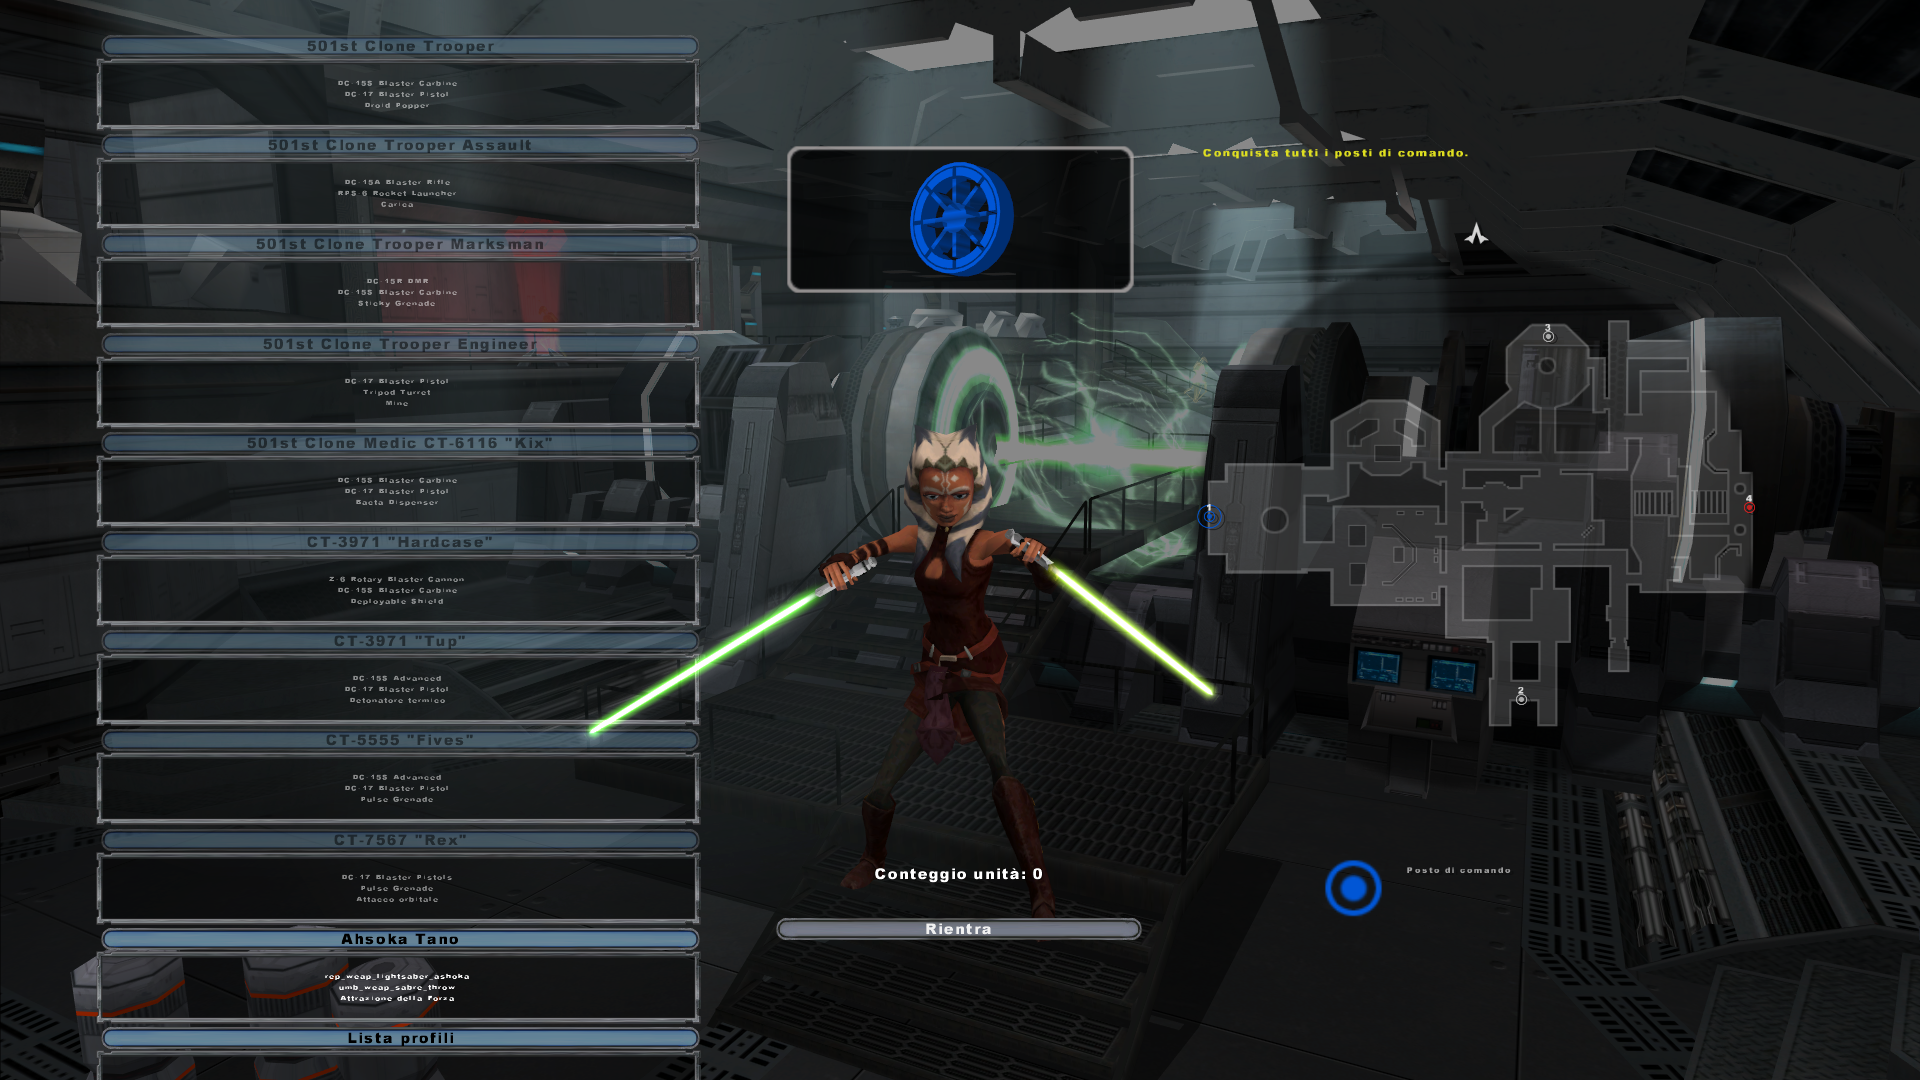 Ahsoka S New Animation Image The Battles Of The Clone Wars Mod